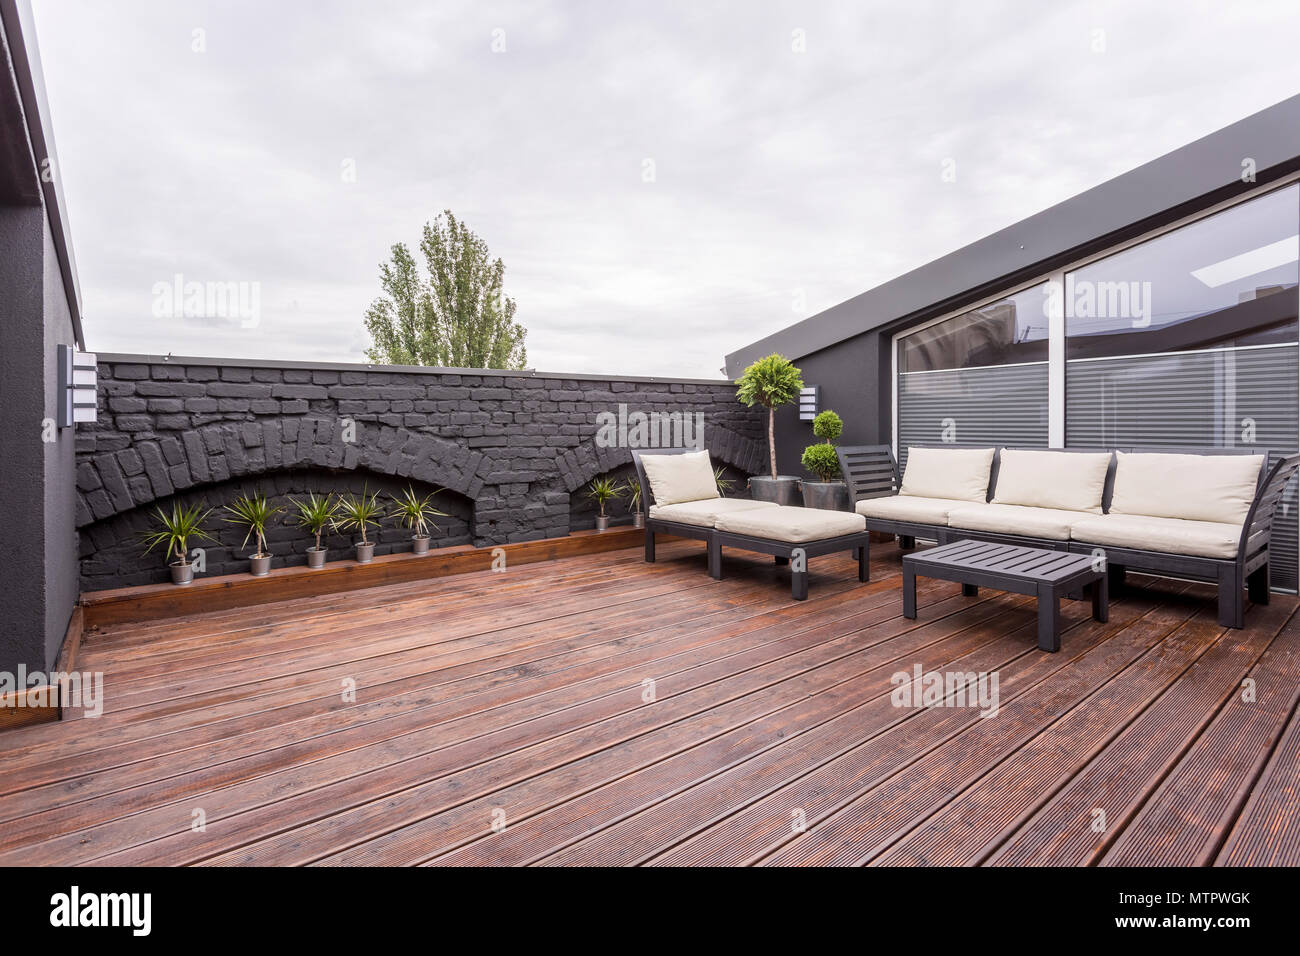 Plants and beige garden furniture on terrace with wooden floor and black brick wall - Stock Image